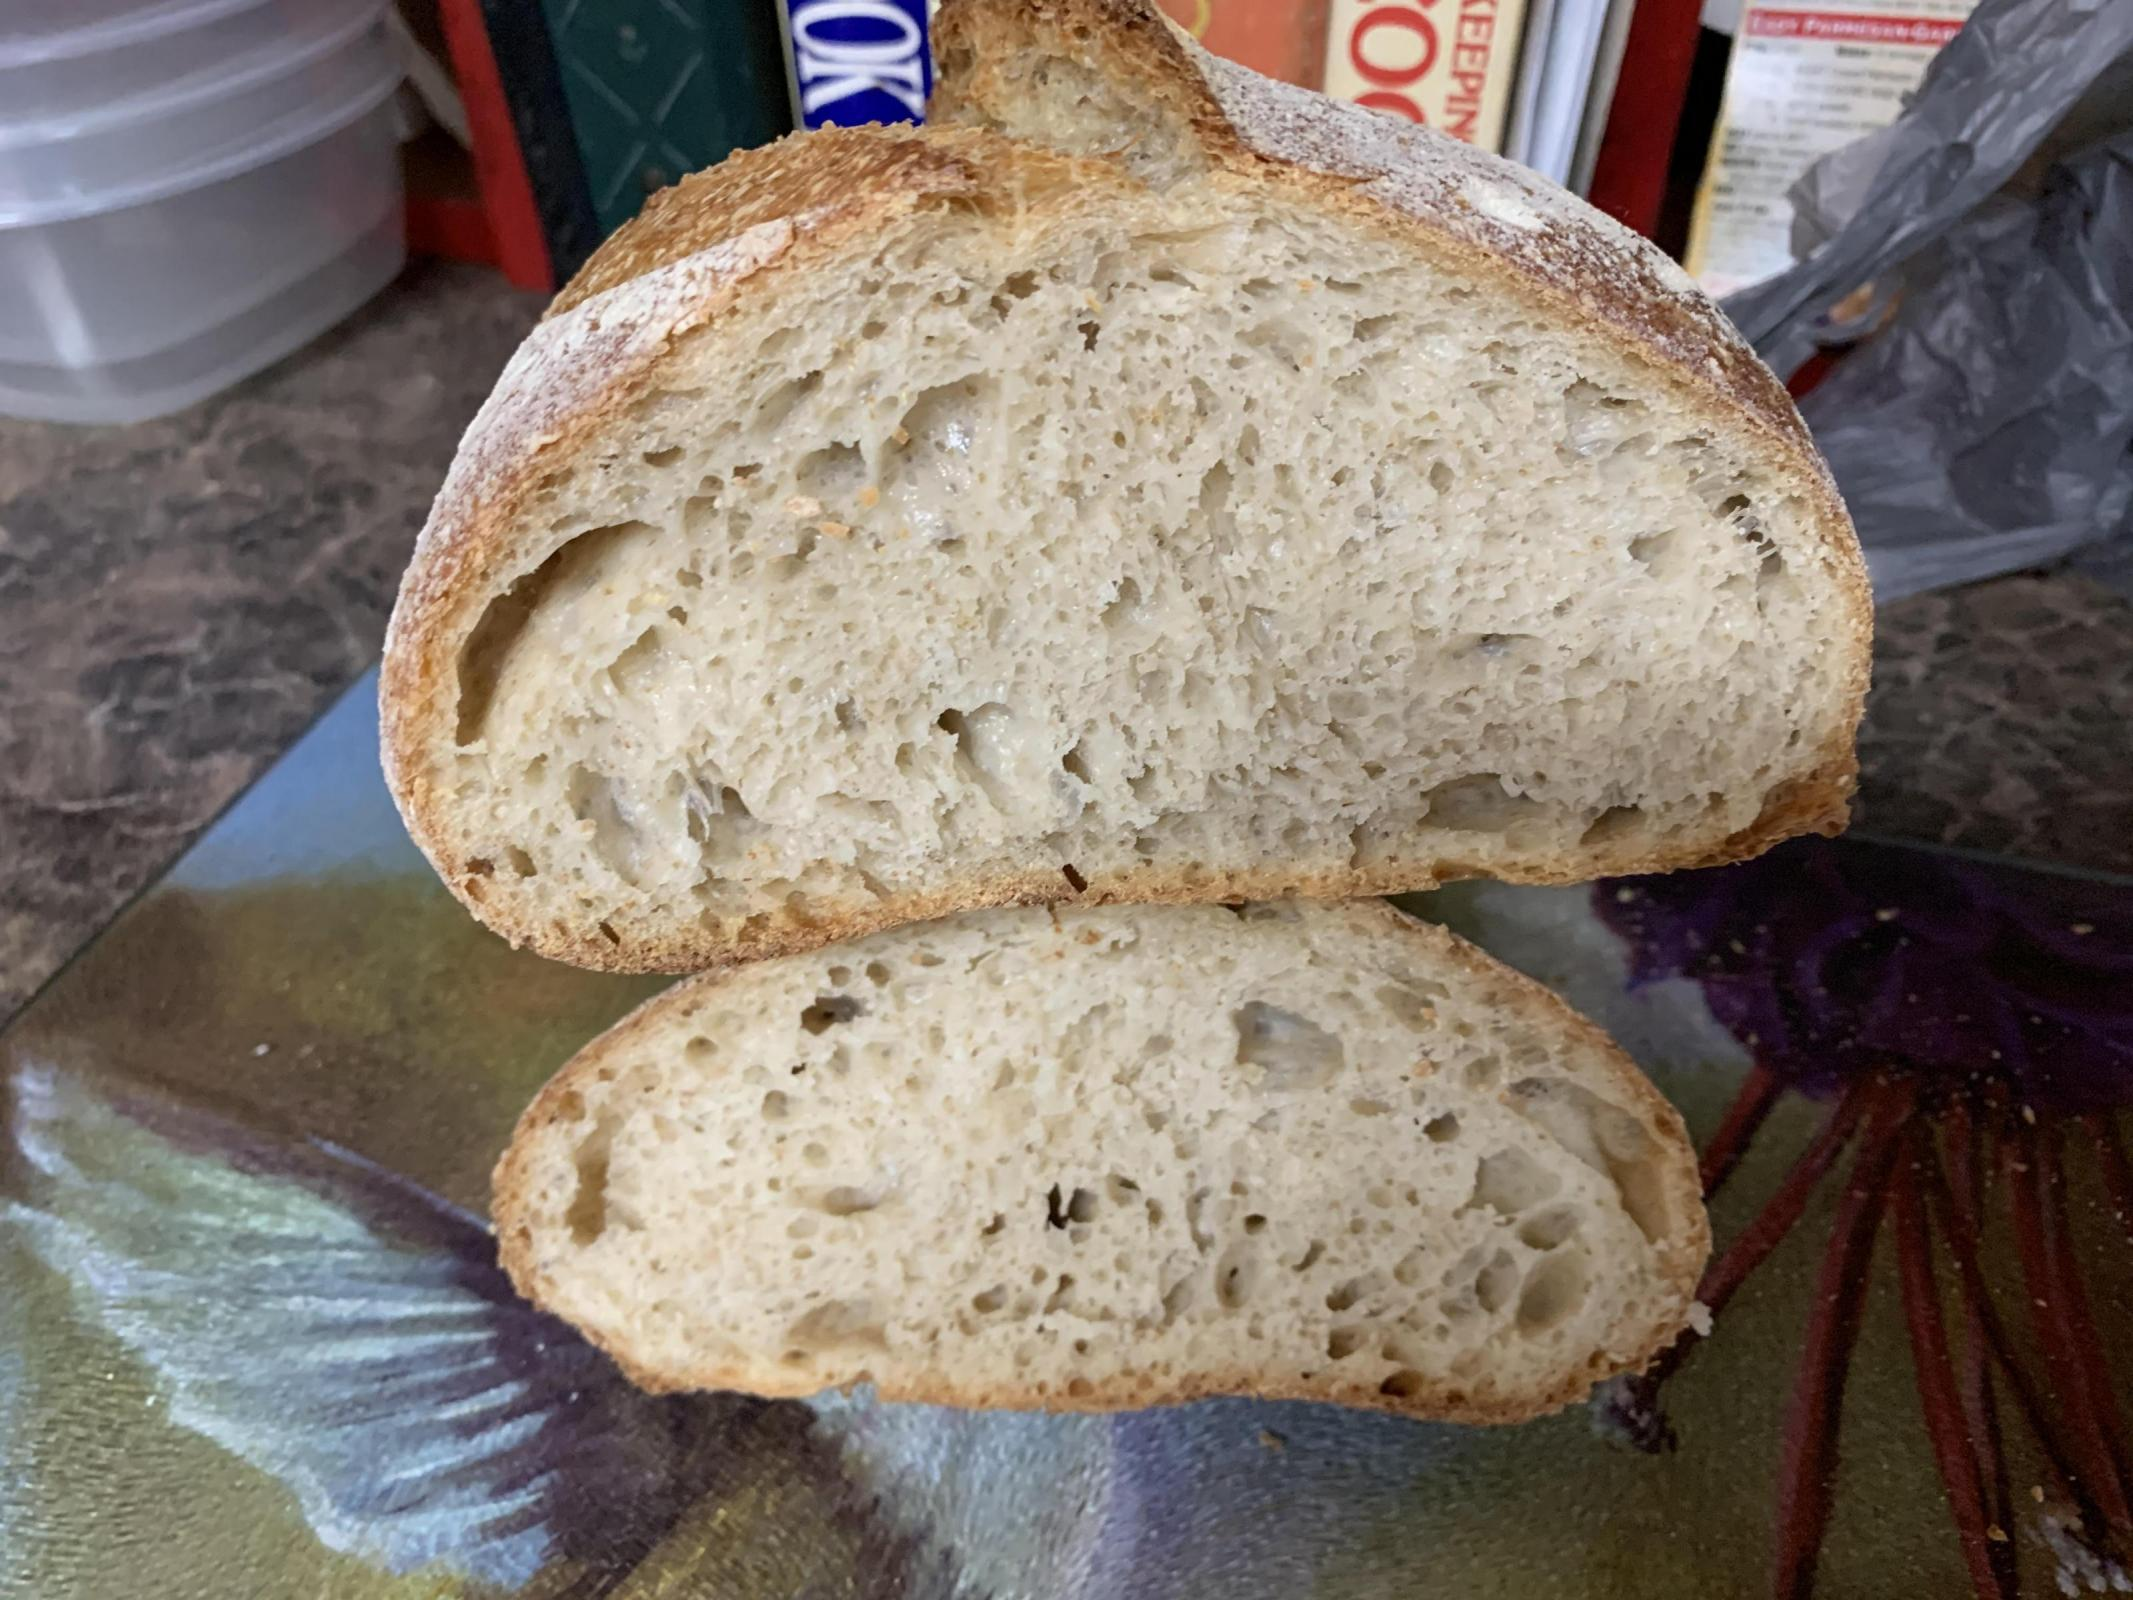 Crumb of first loaf